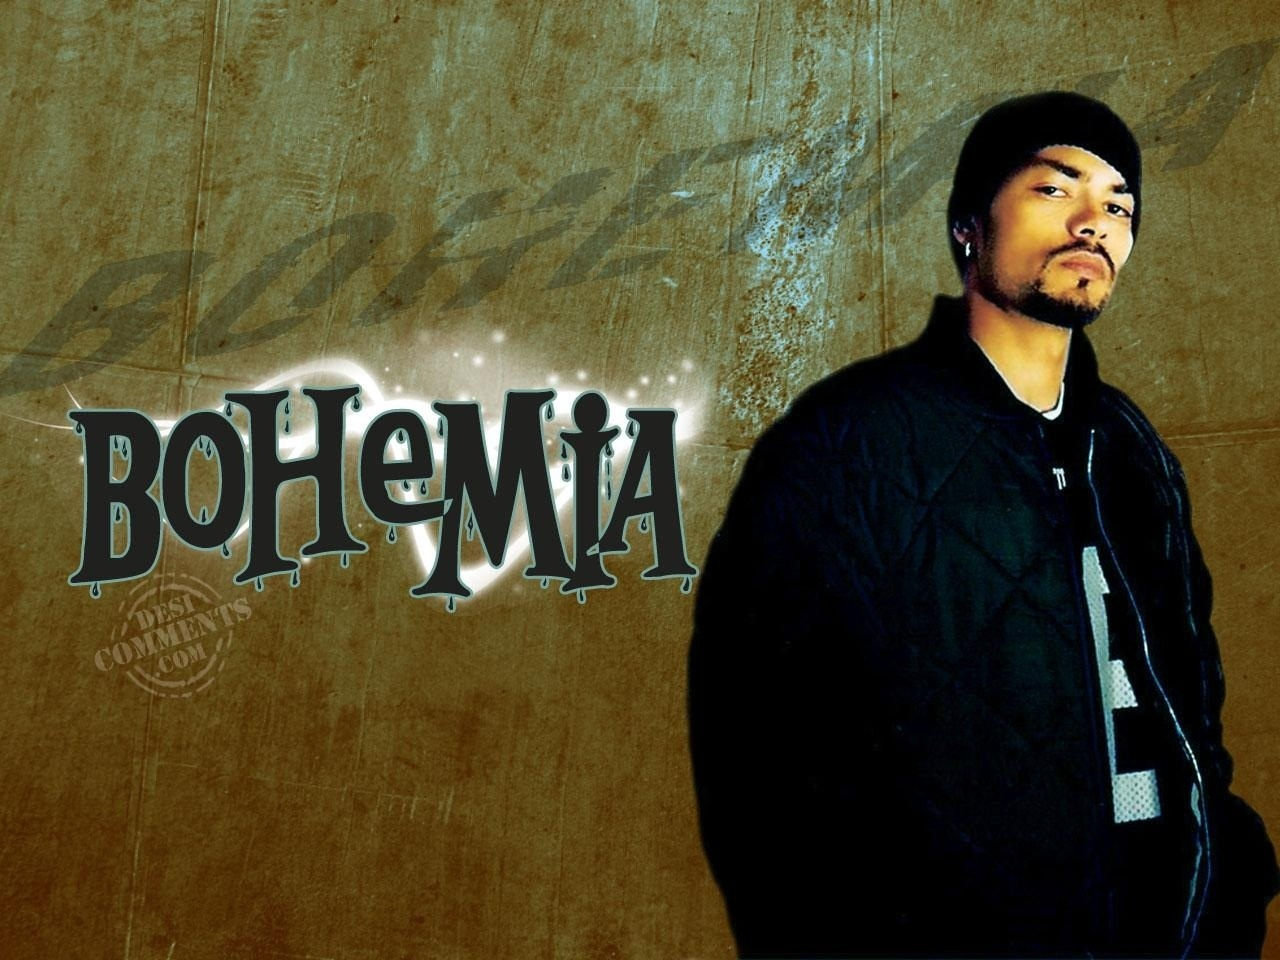 Bohemia Quotes Wallpaper Download Bohemia Hd Wallpaper Download Gallery